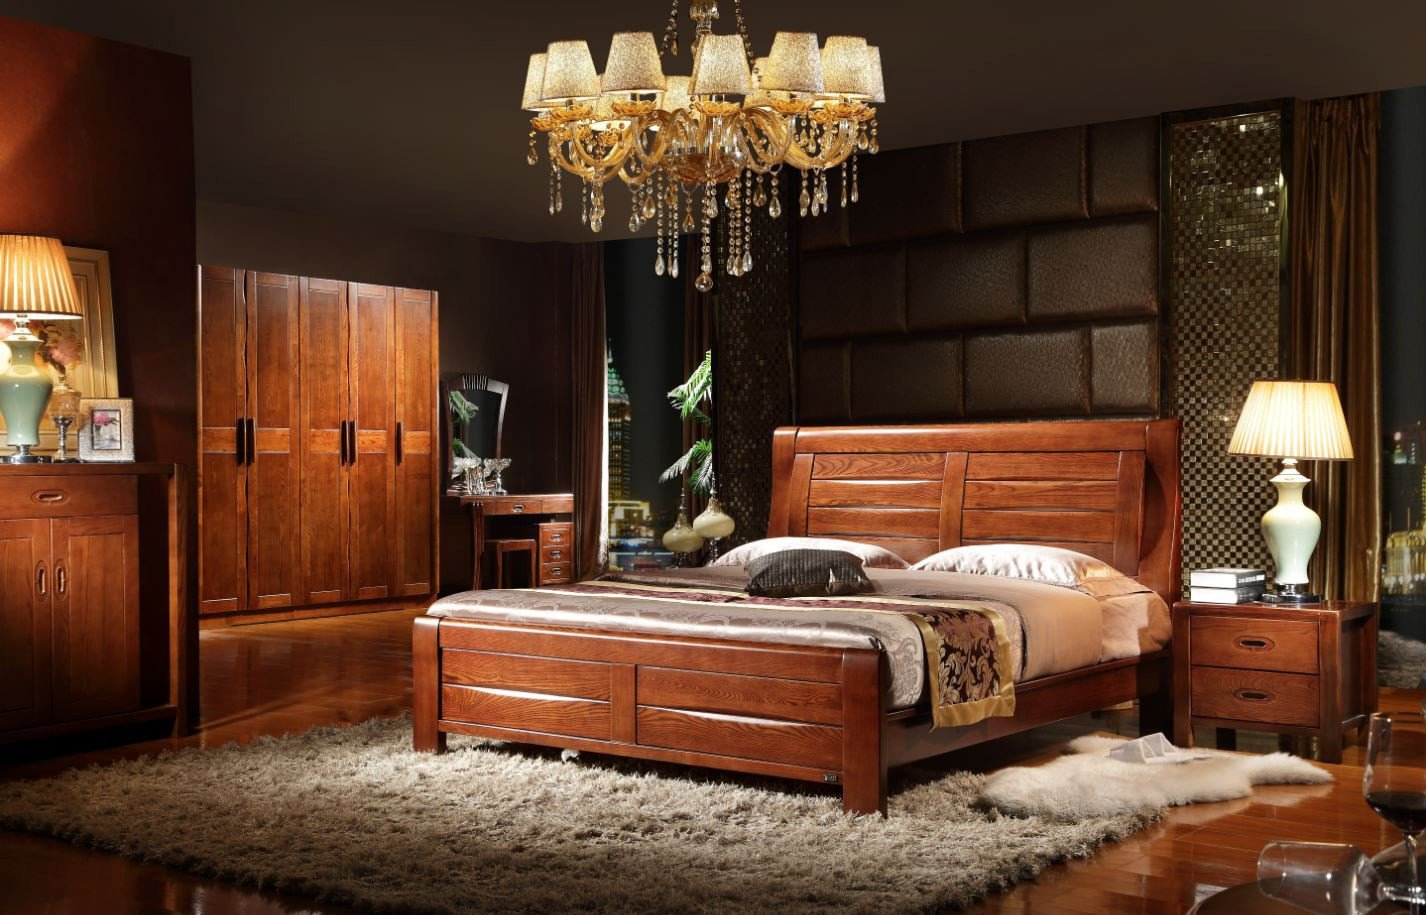 The Dump Bedroom Set Fresh China Likely to Dump Bedroom Furniture if Rules are Relaxed